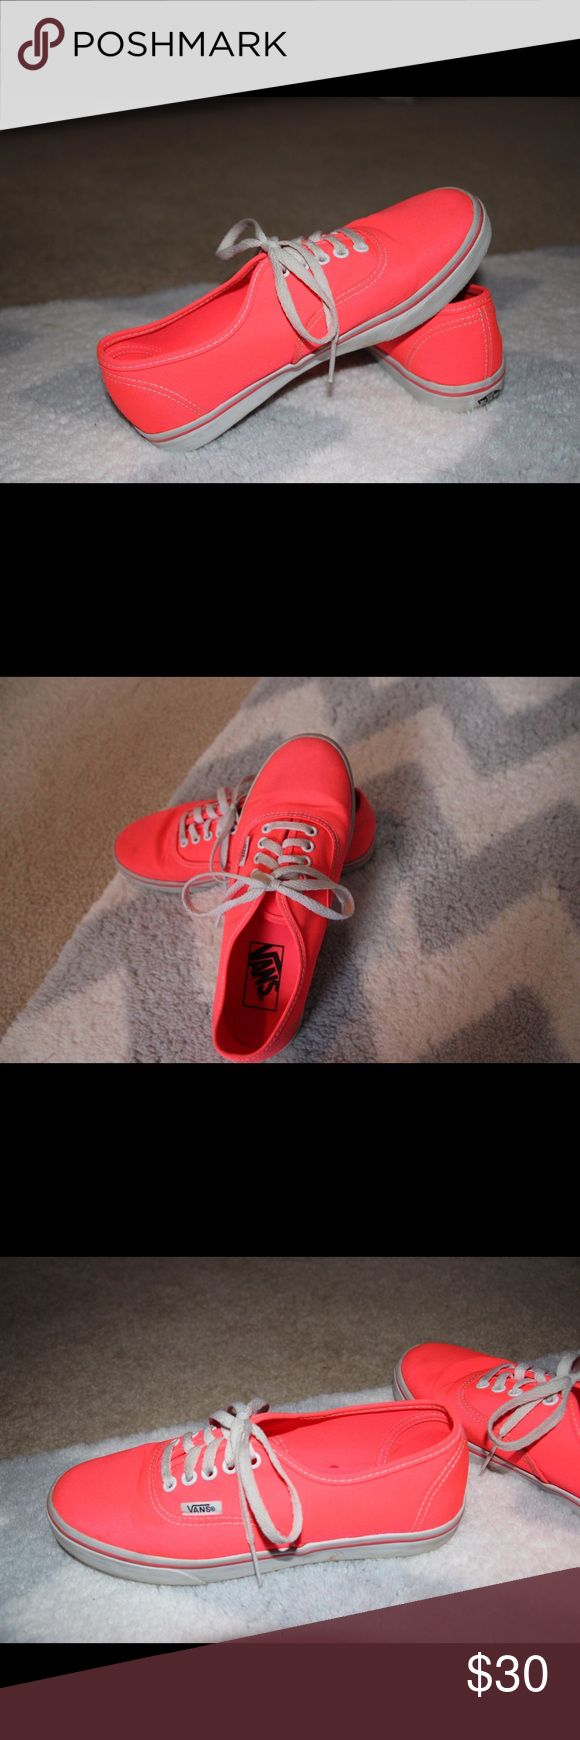 Coral Vans These look brand new. Only were worn a couple times. Very bright. Women's size 5.5 men's size 4. Willing to take reasonable offers Vans Shoes Sneakers